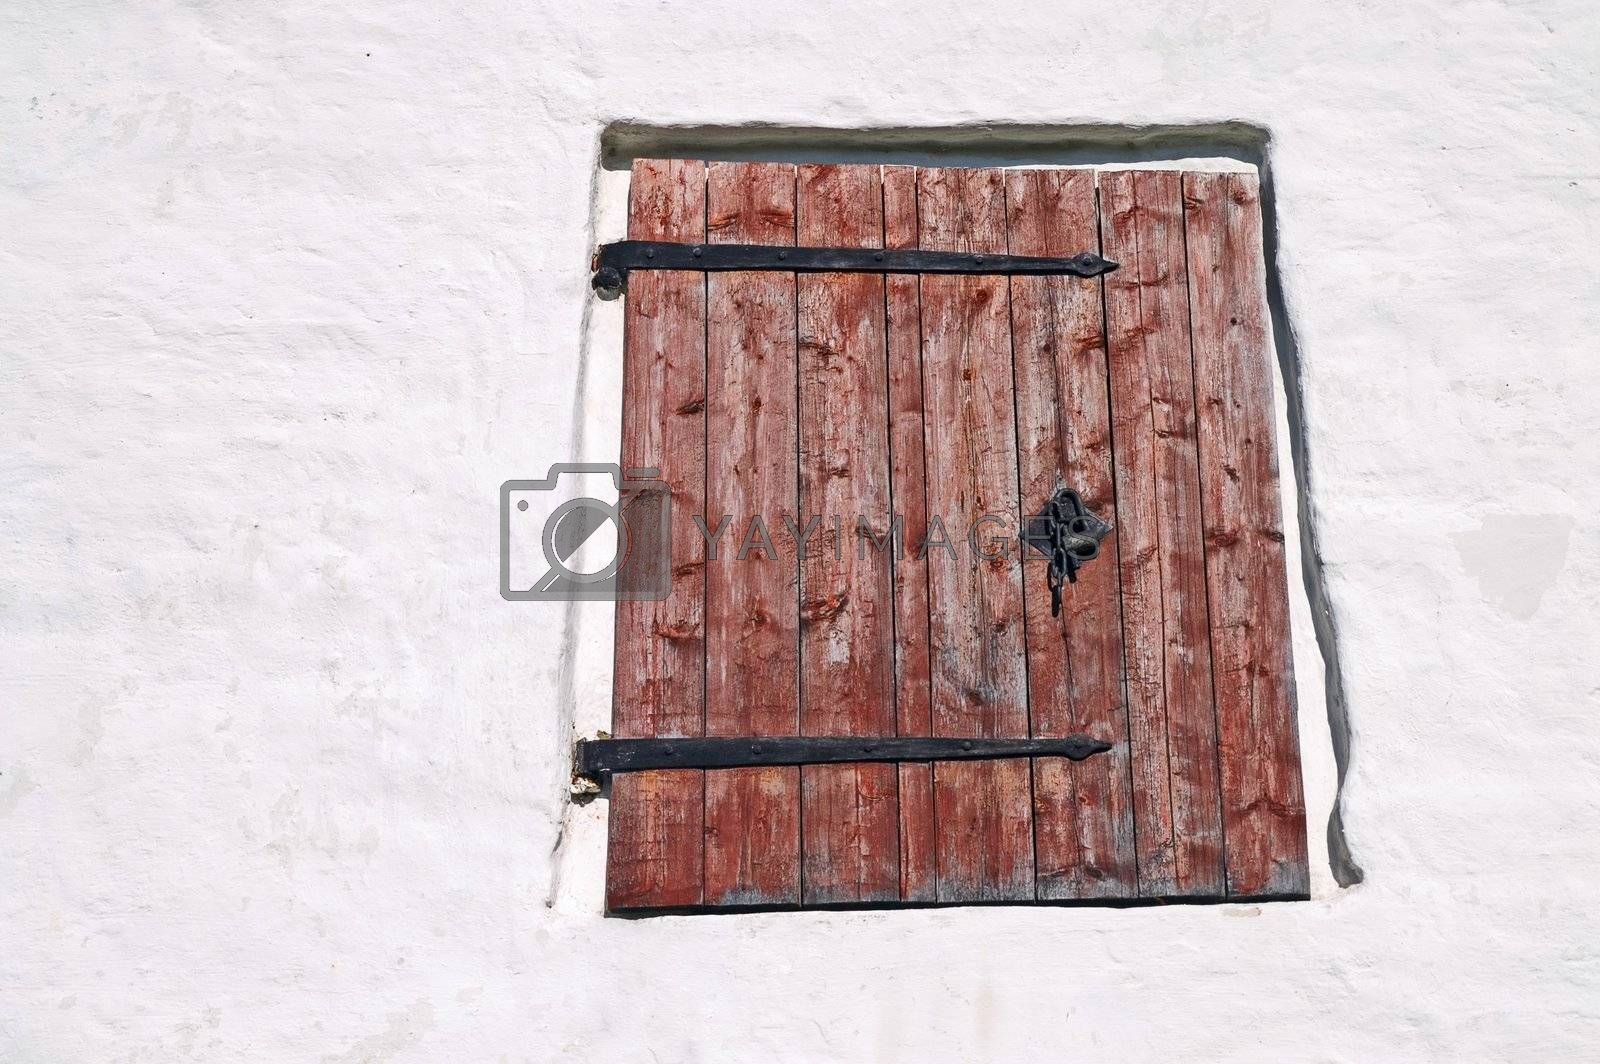 Window Shutter in Ancient Russian Monastery